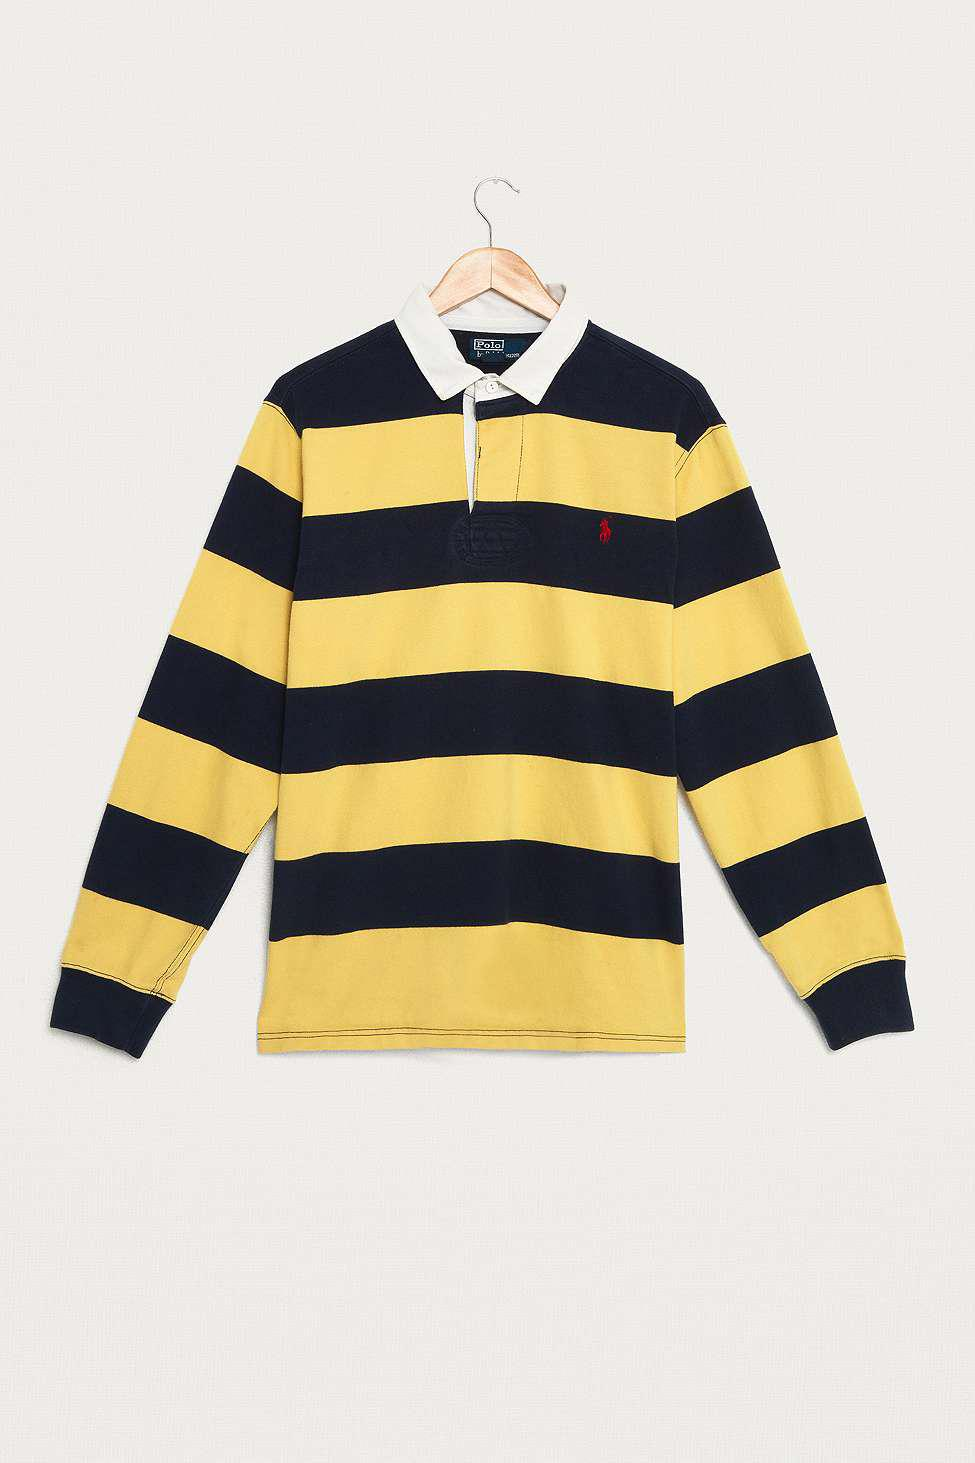 76117ca7ba17a Urban Renewal Vintage One-of-a-kind Ralph Lauren Yellow And Navy ...